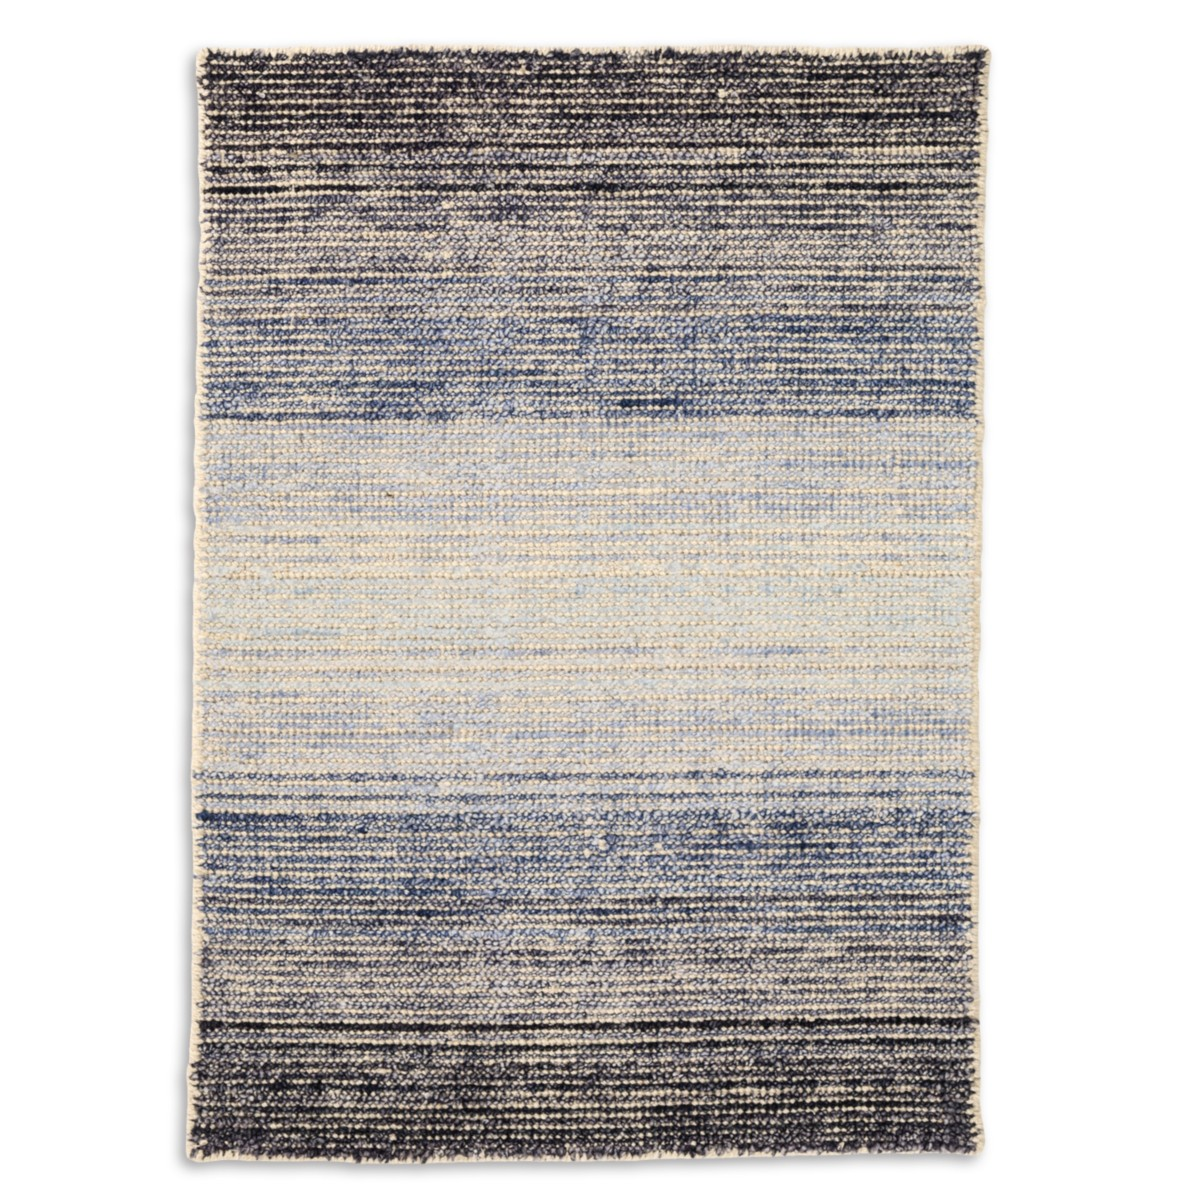 Moon Cotton Viscose Woven Rug - Blue